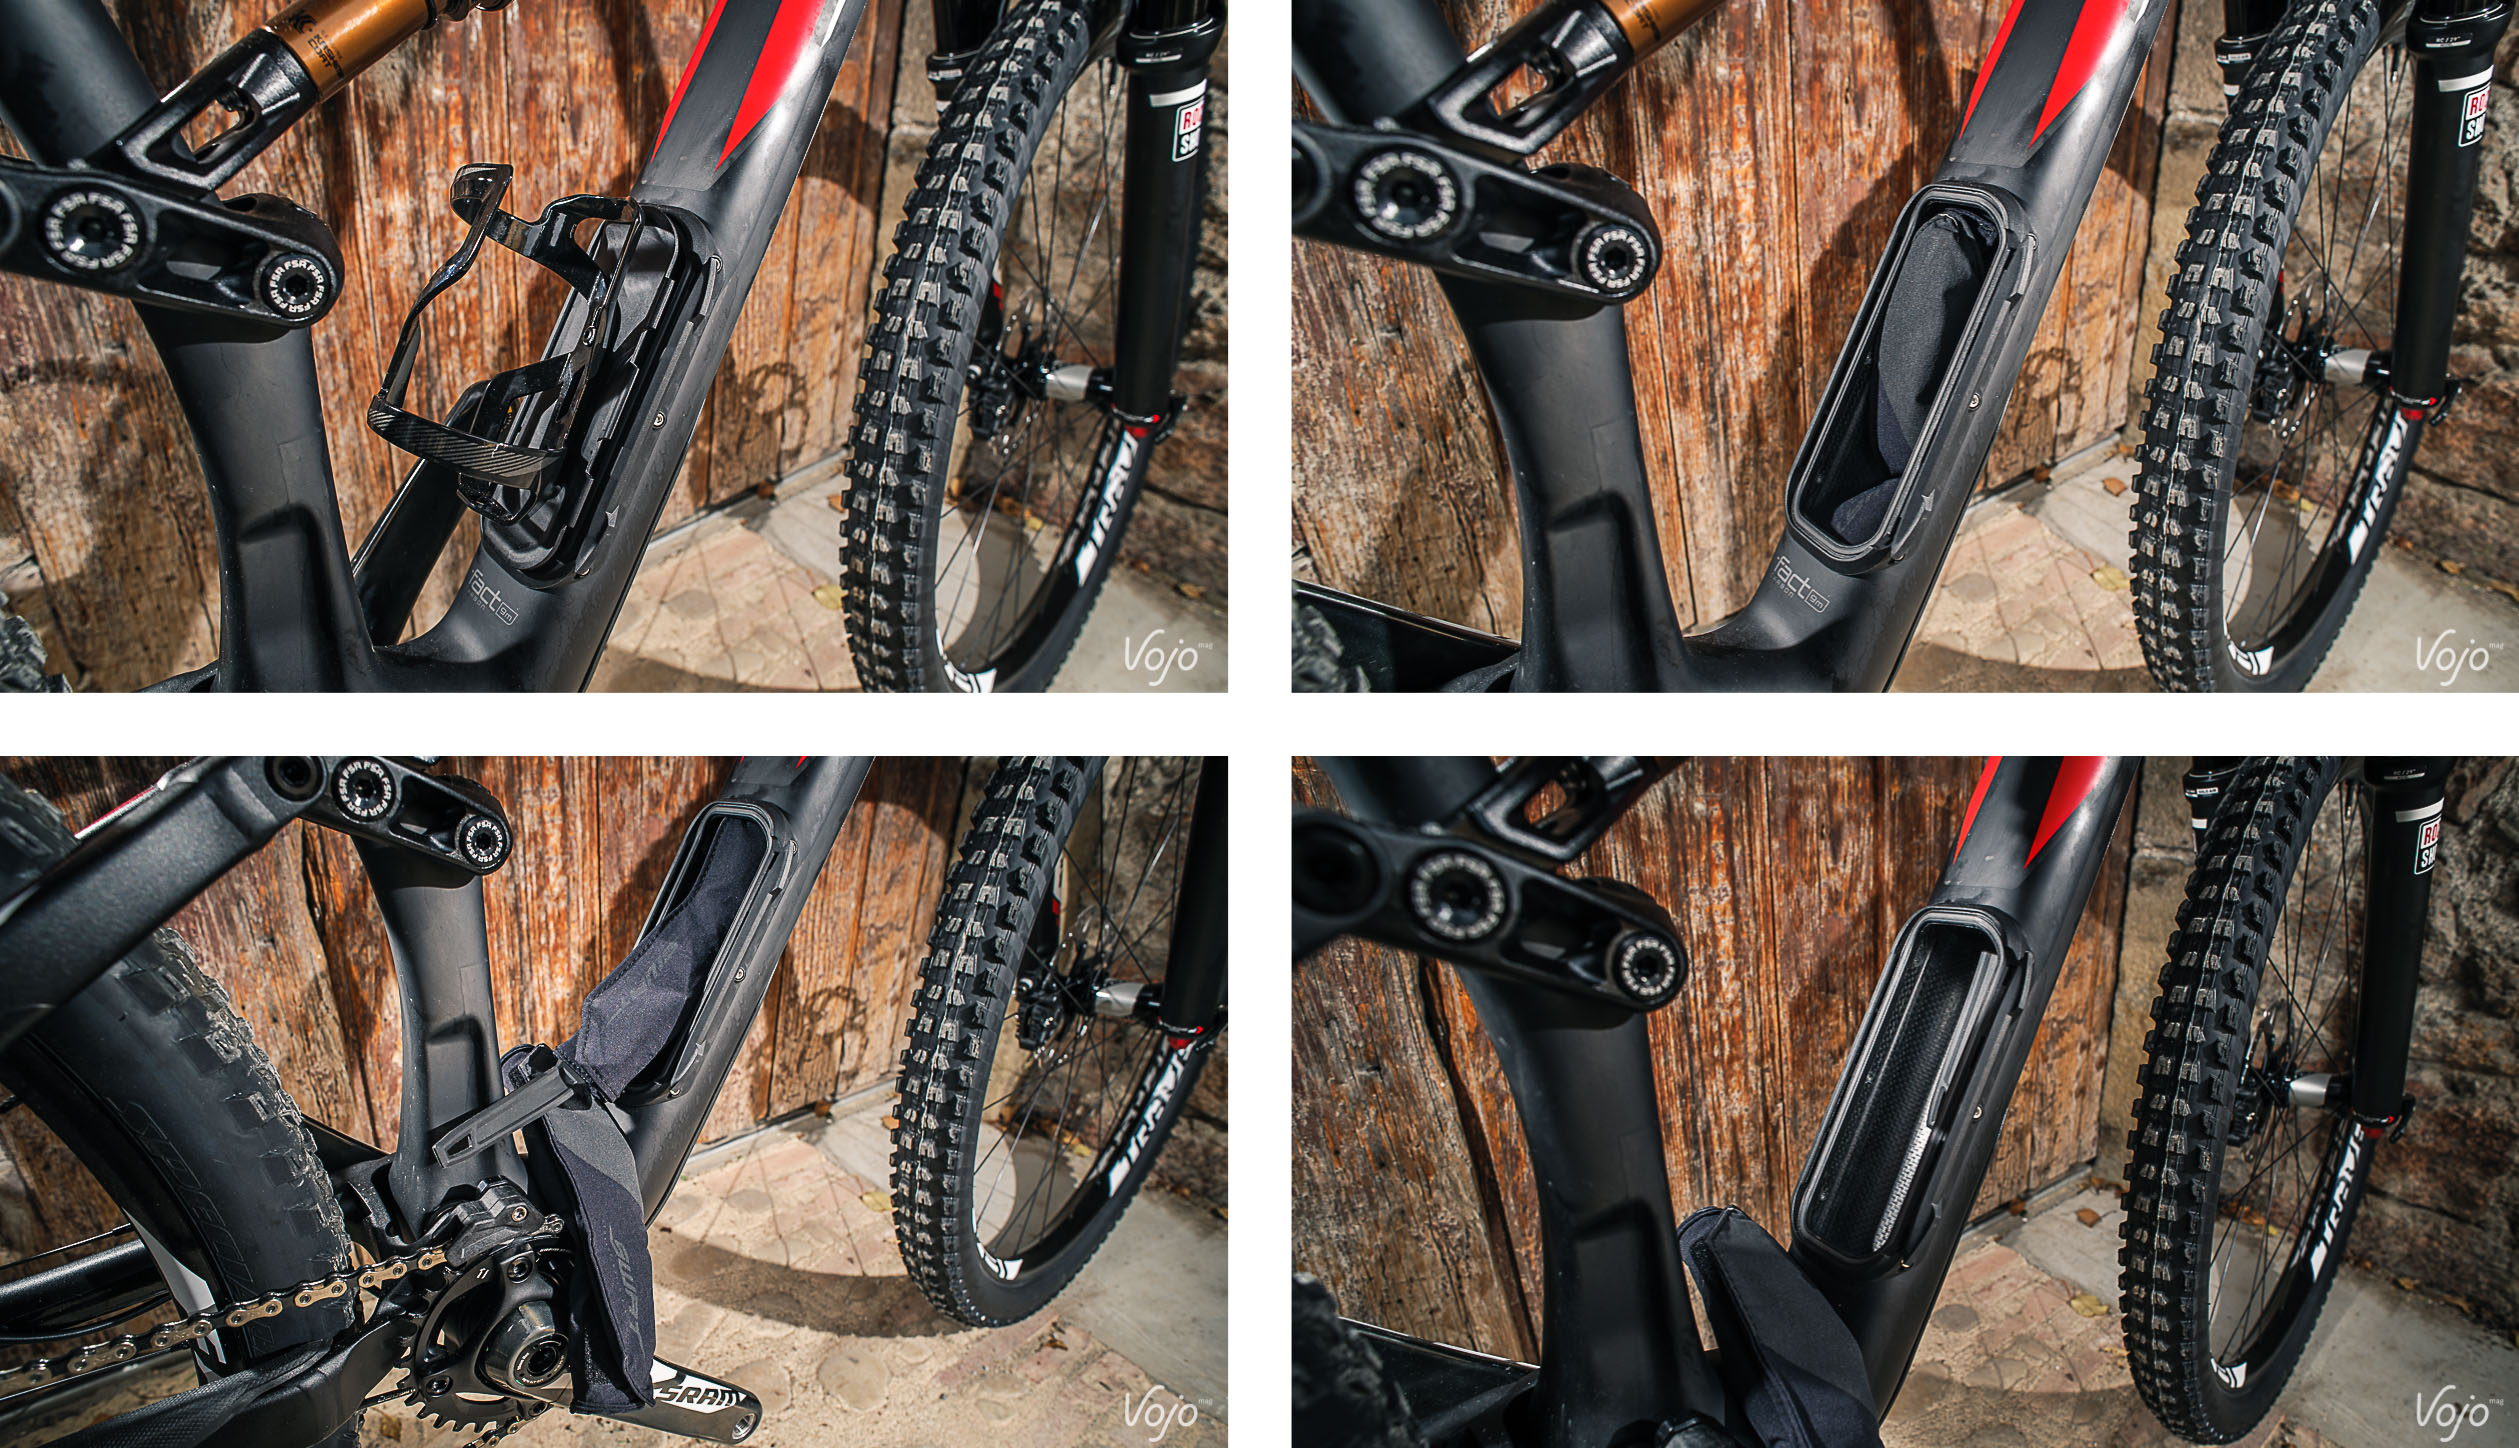 Compo_5_Specialized_Stumpjumper_2016_Swat_Copyright_OBeart_VojoMag-1